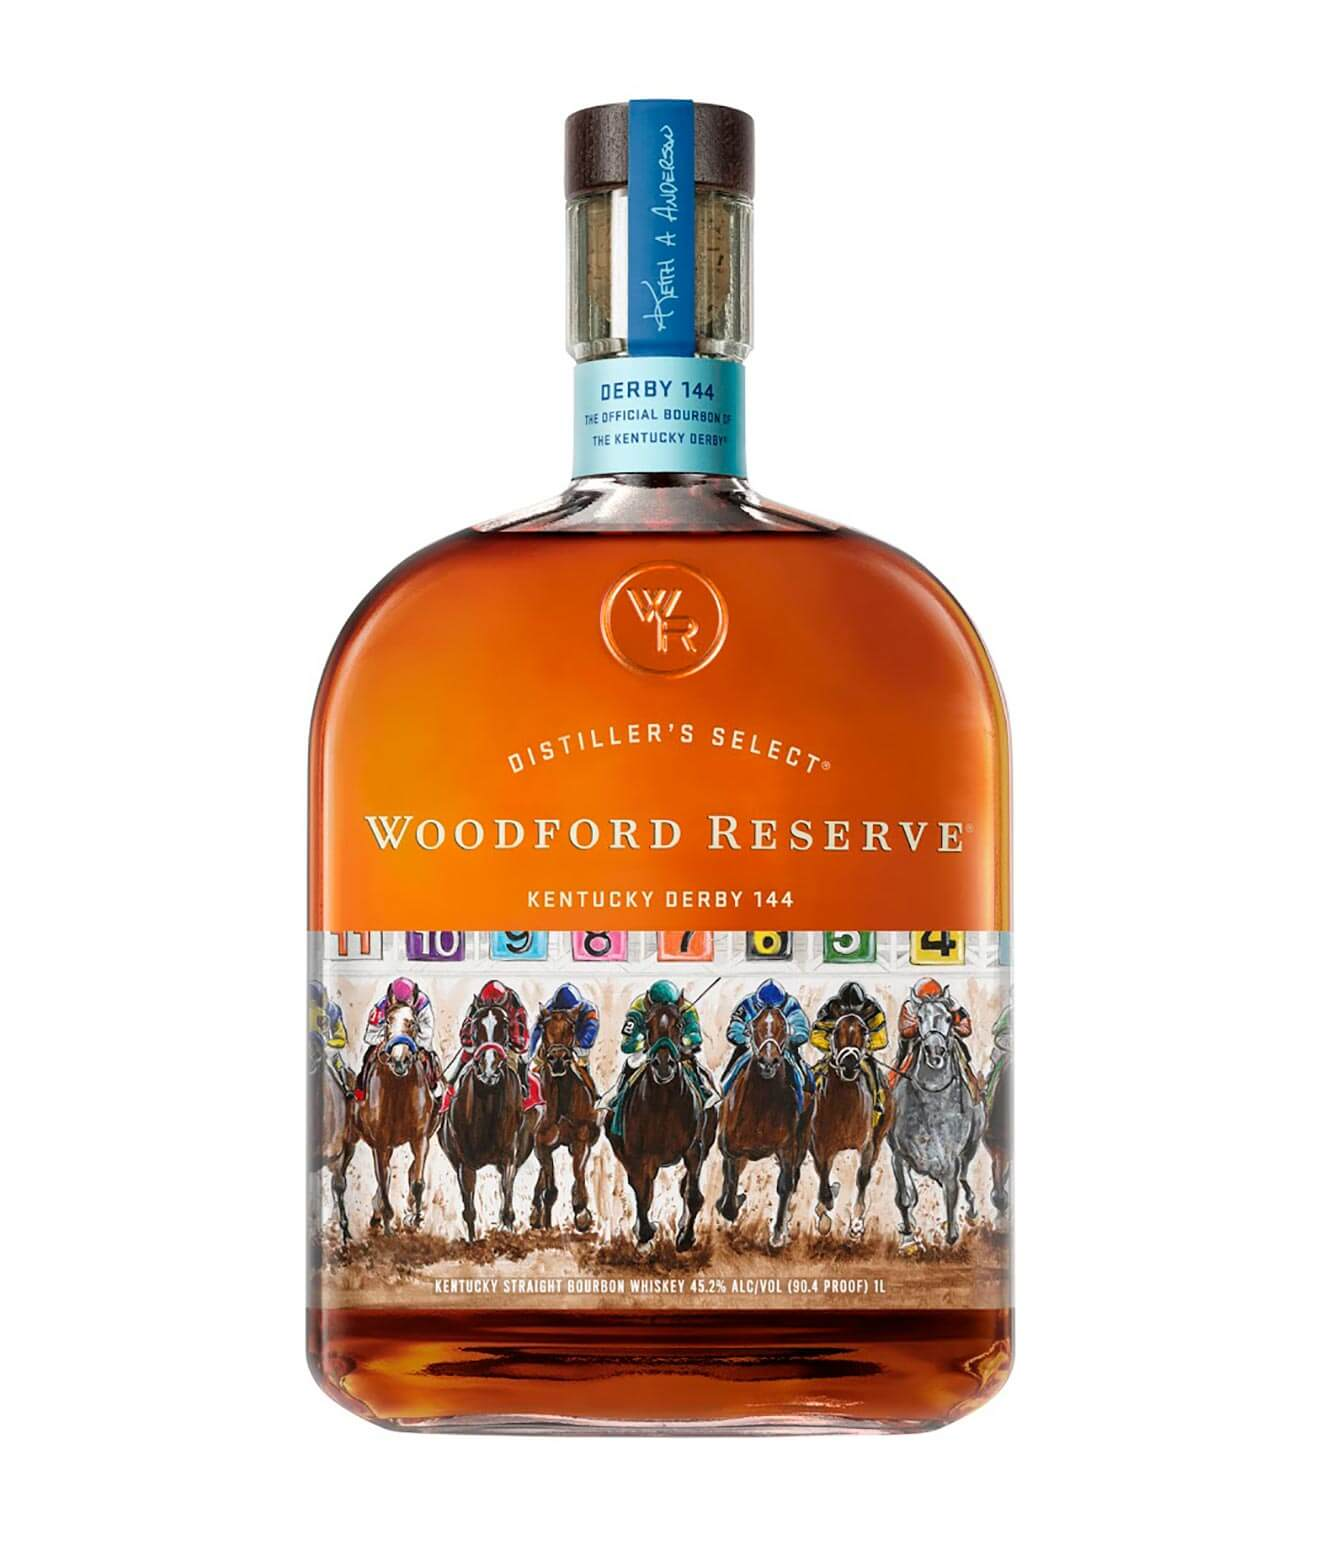 Woodford Reserve 2018 Kentucky Derby Bottle, bottle on white